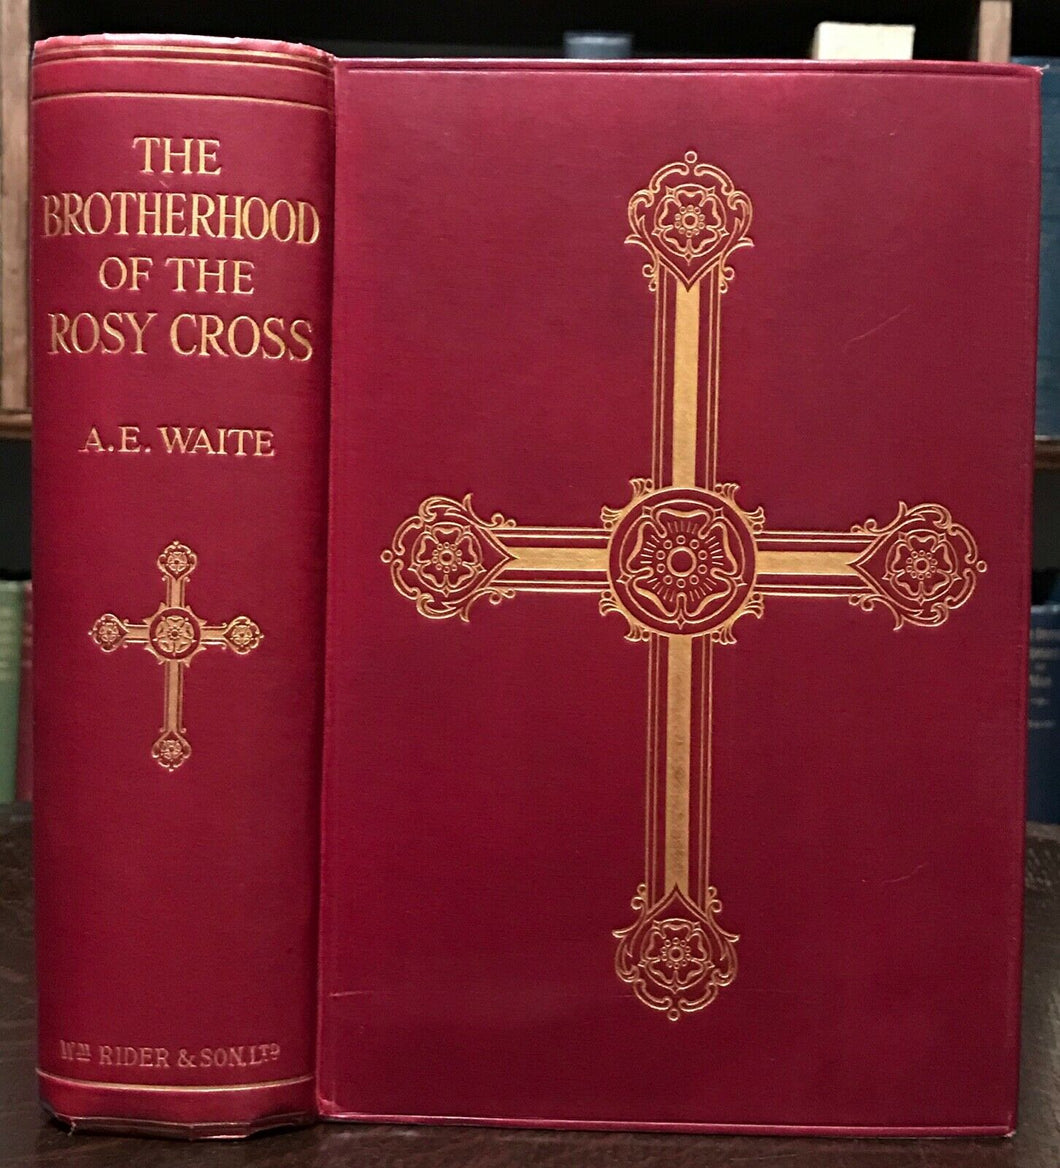 BROTHERHOOD OF THE ROSY CROSS - Waite, 1st 1924 - ROSICRUCIAN ALCHEMY ROSE CROIX